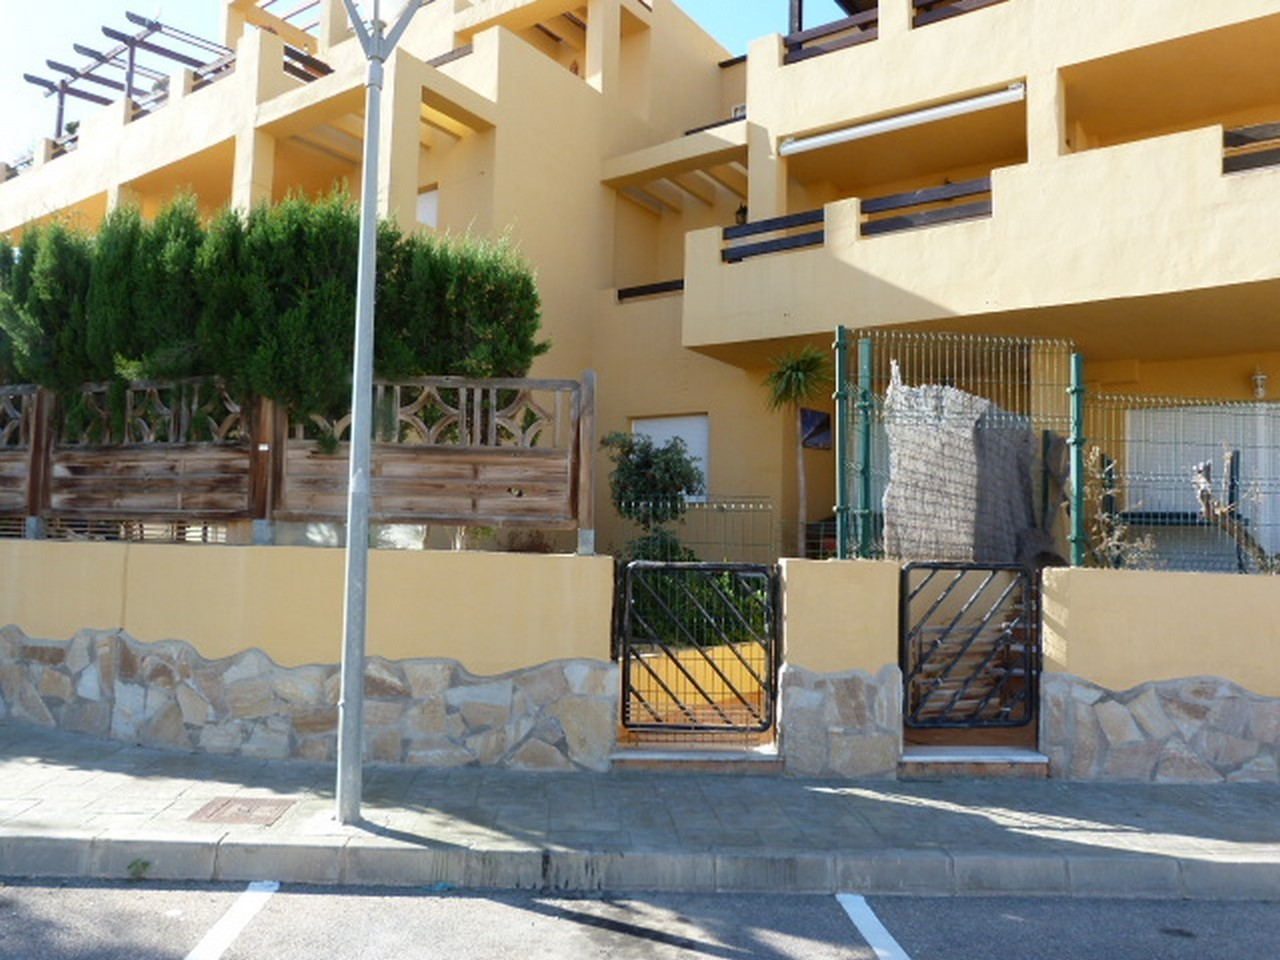 2 Bedrooms - Apartment - Almeria - For Sale